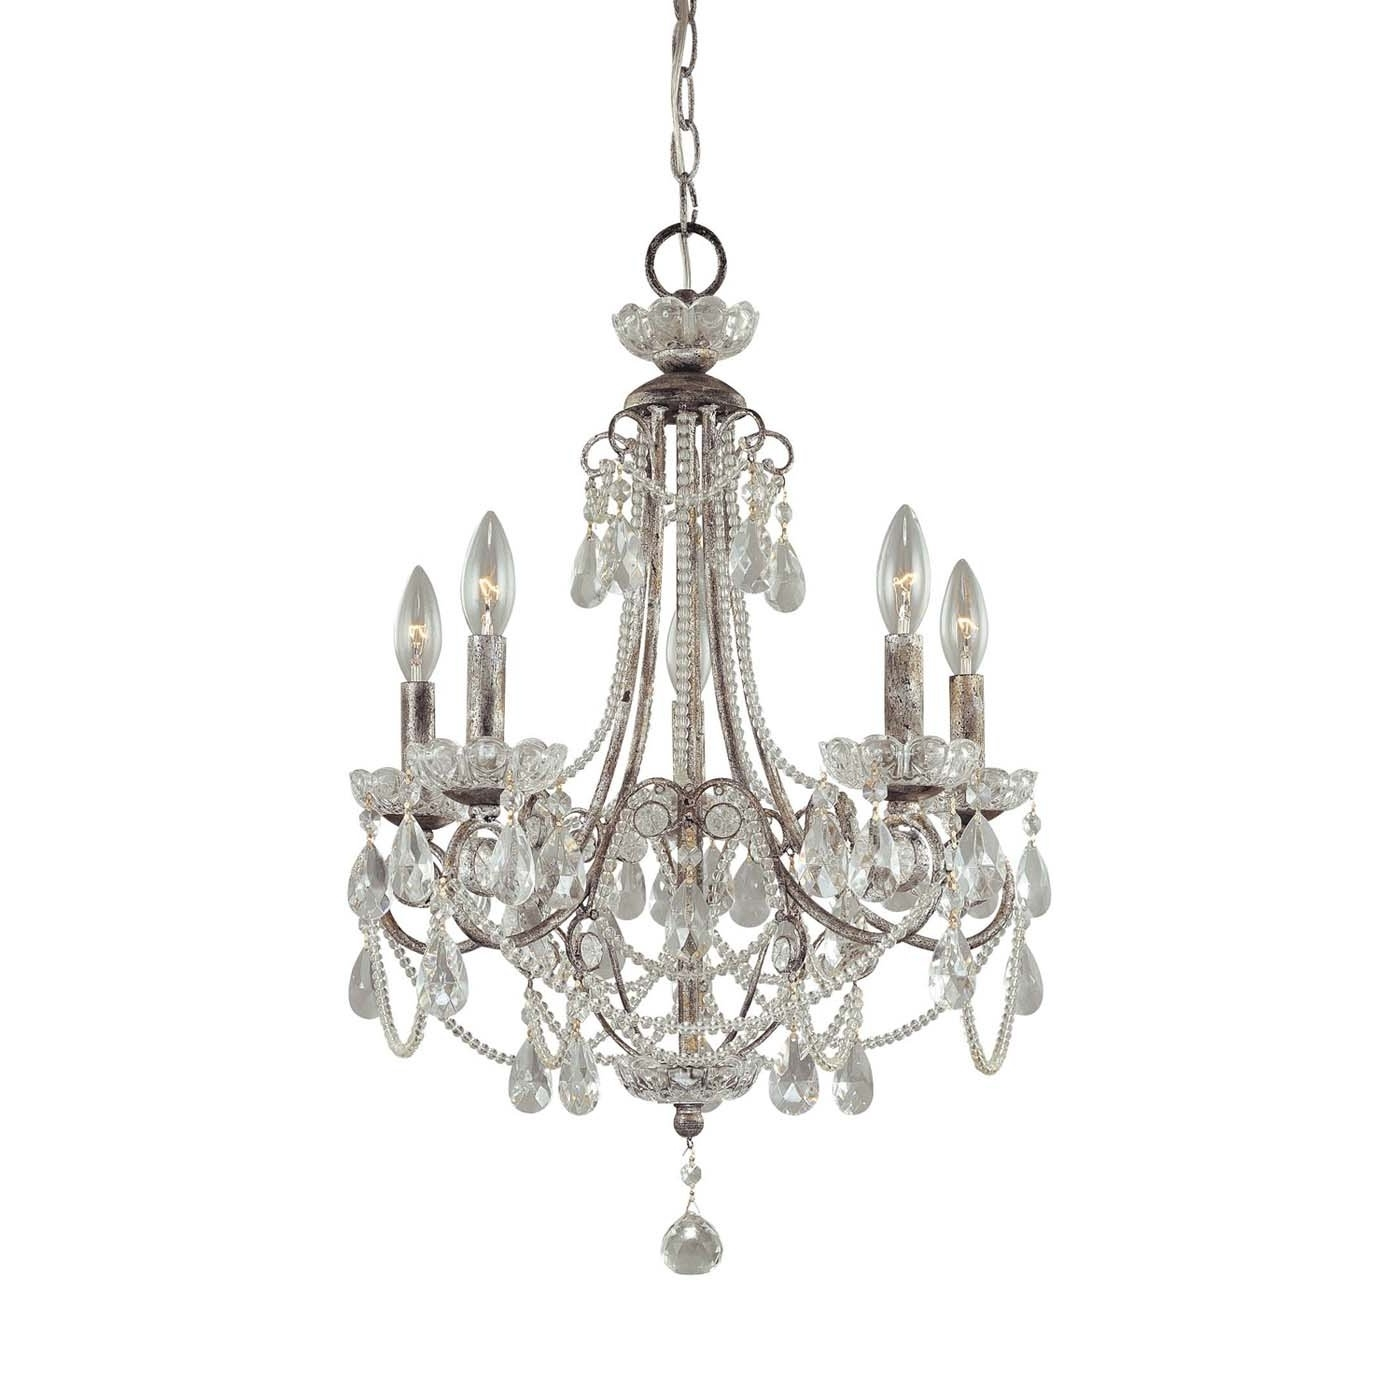 Small Glass Chandeliers Pertaining To Latest Chandelier: Extraordinary Small Chandeliers For Bedrooms Mini (View 5 of 15)